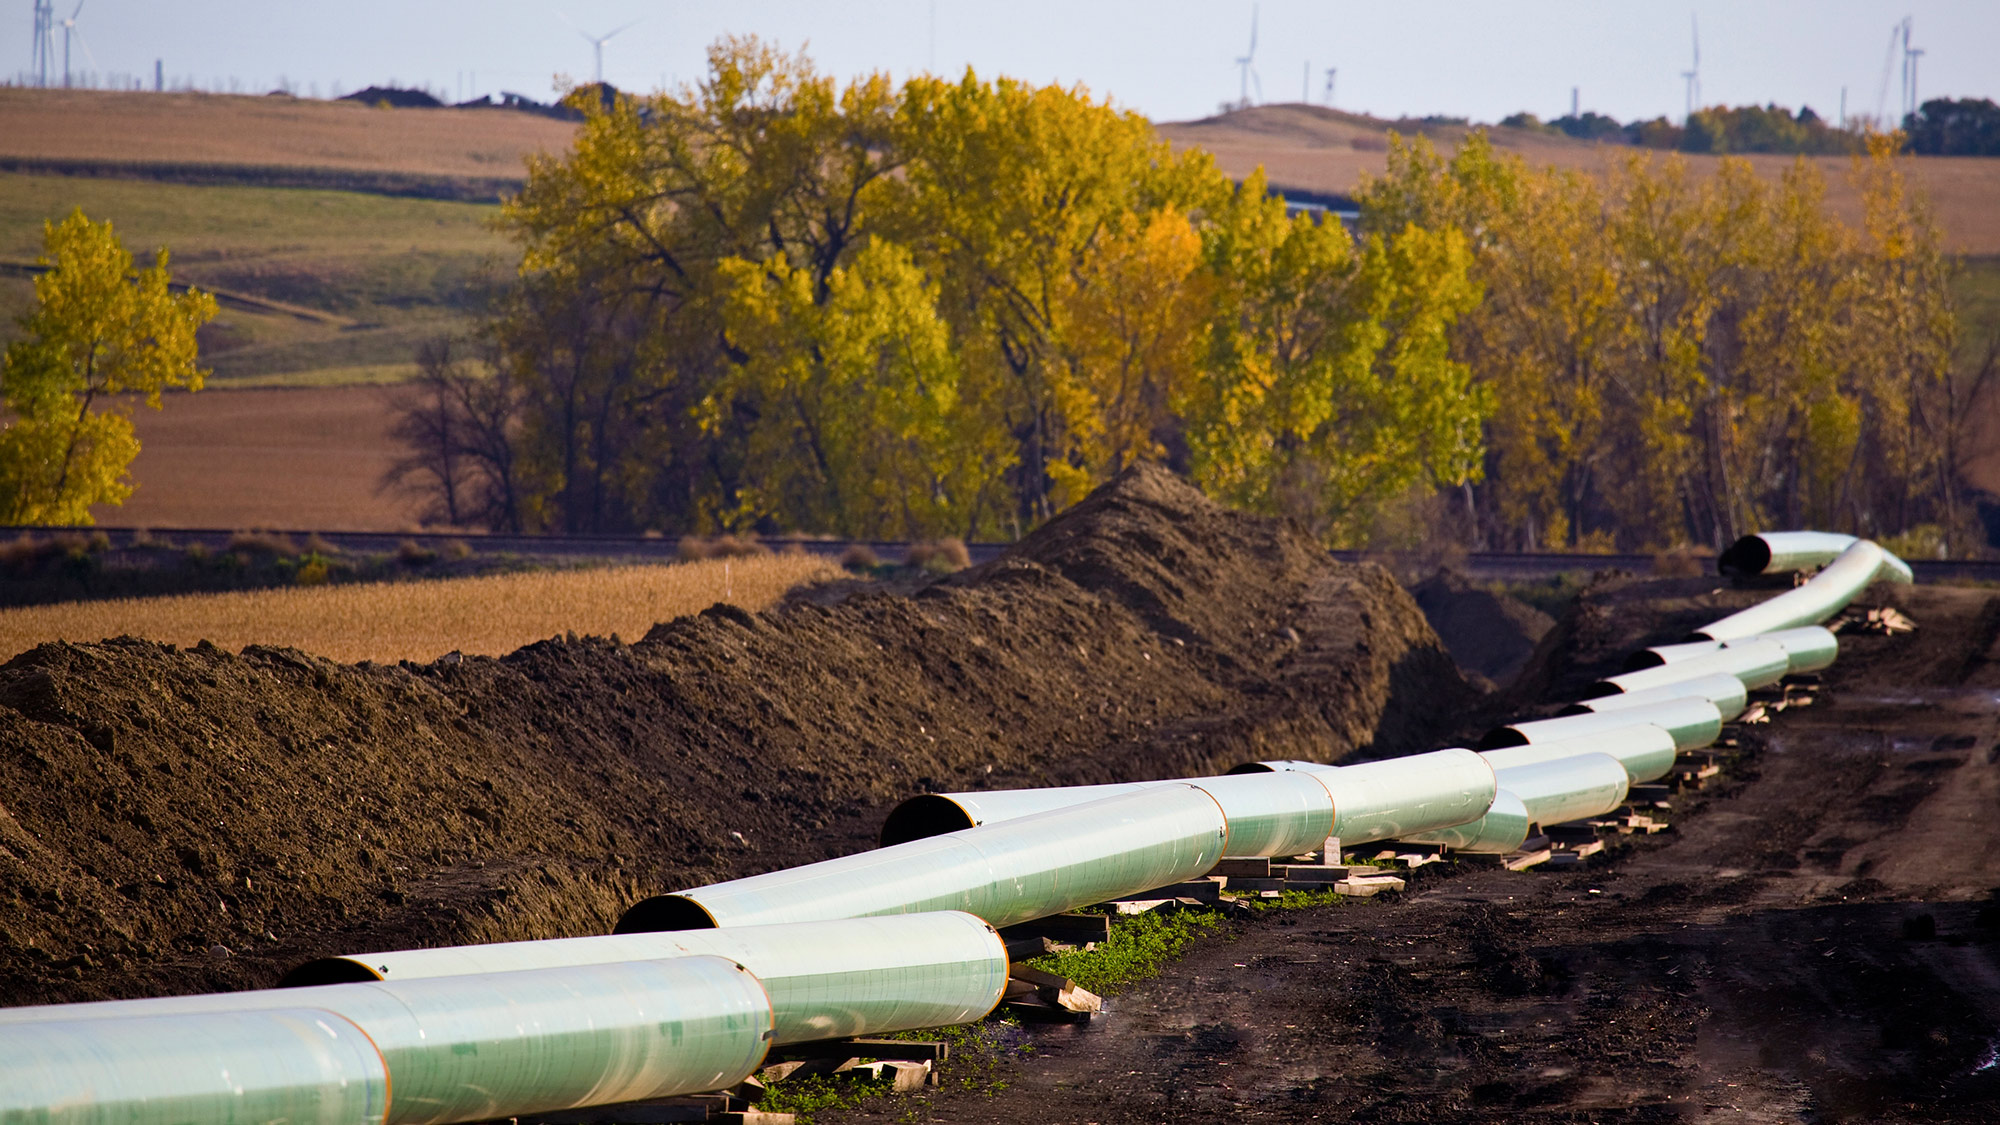 The Keystone Oil Pipeline is pictured under construction in North Dakota in this undated photograph released on January 18, 2012.